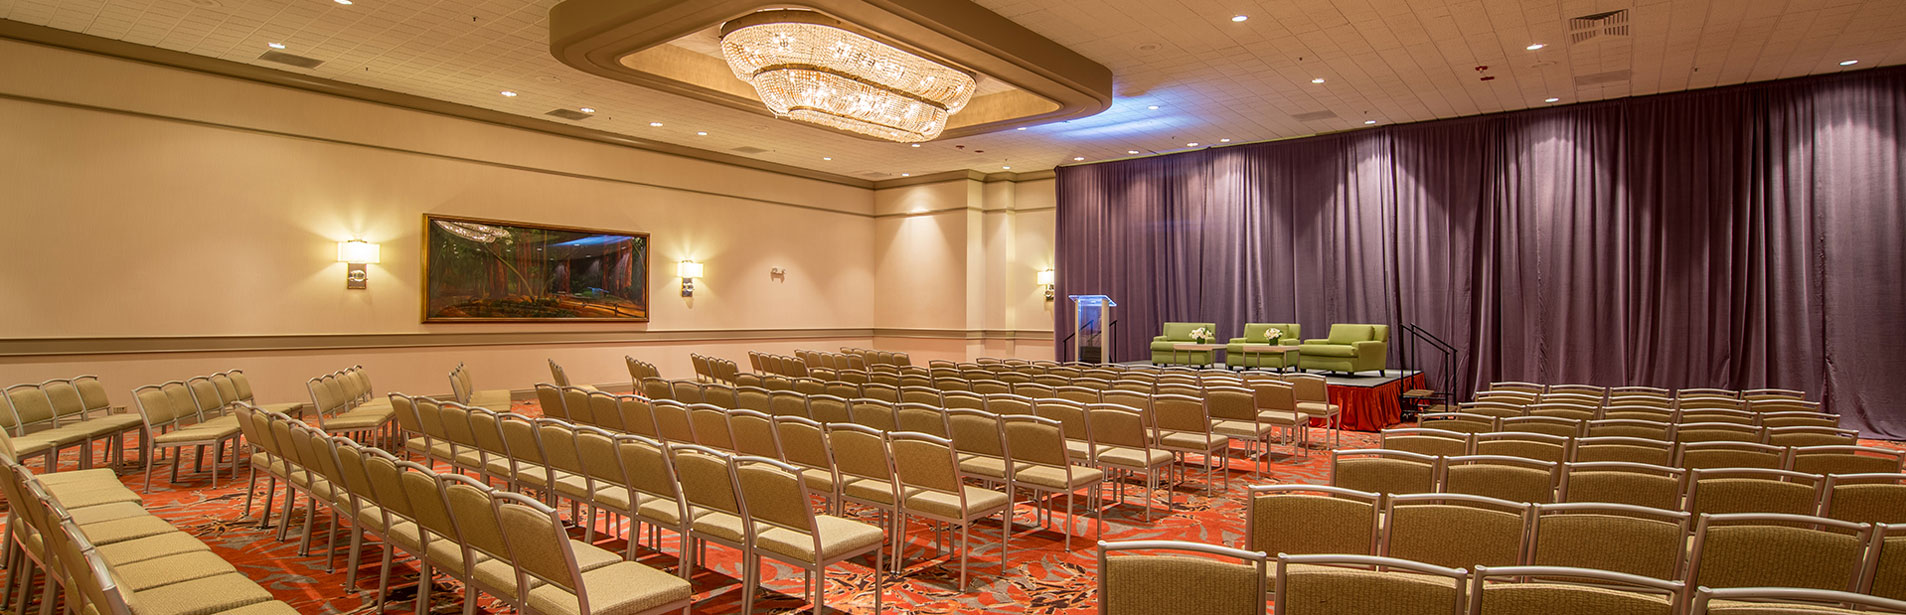 image of our ballroom set up theater style with stage and lectern at the front